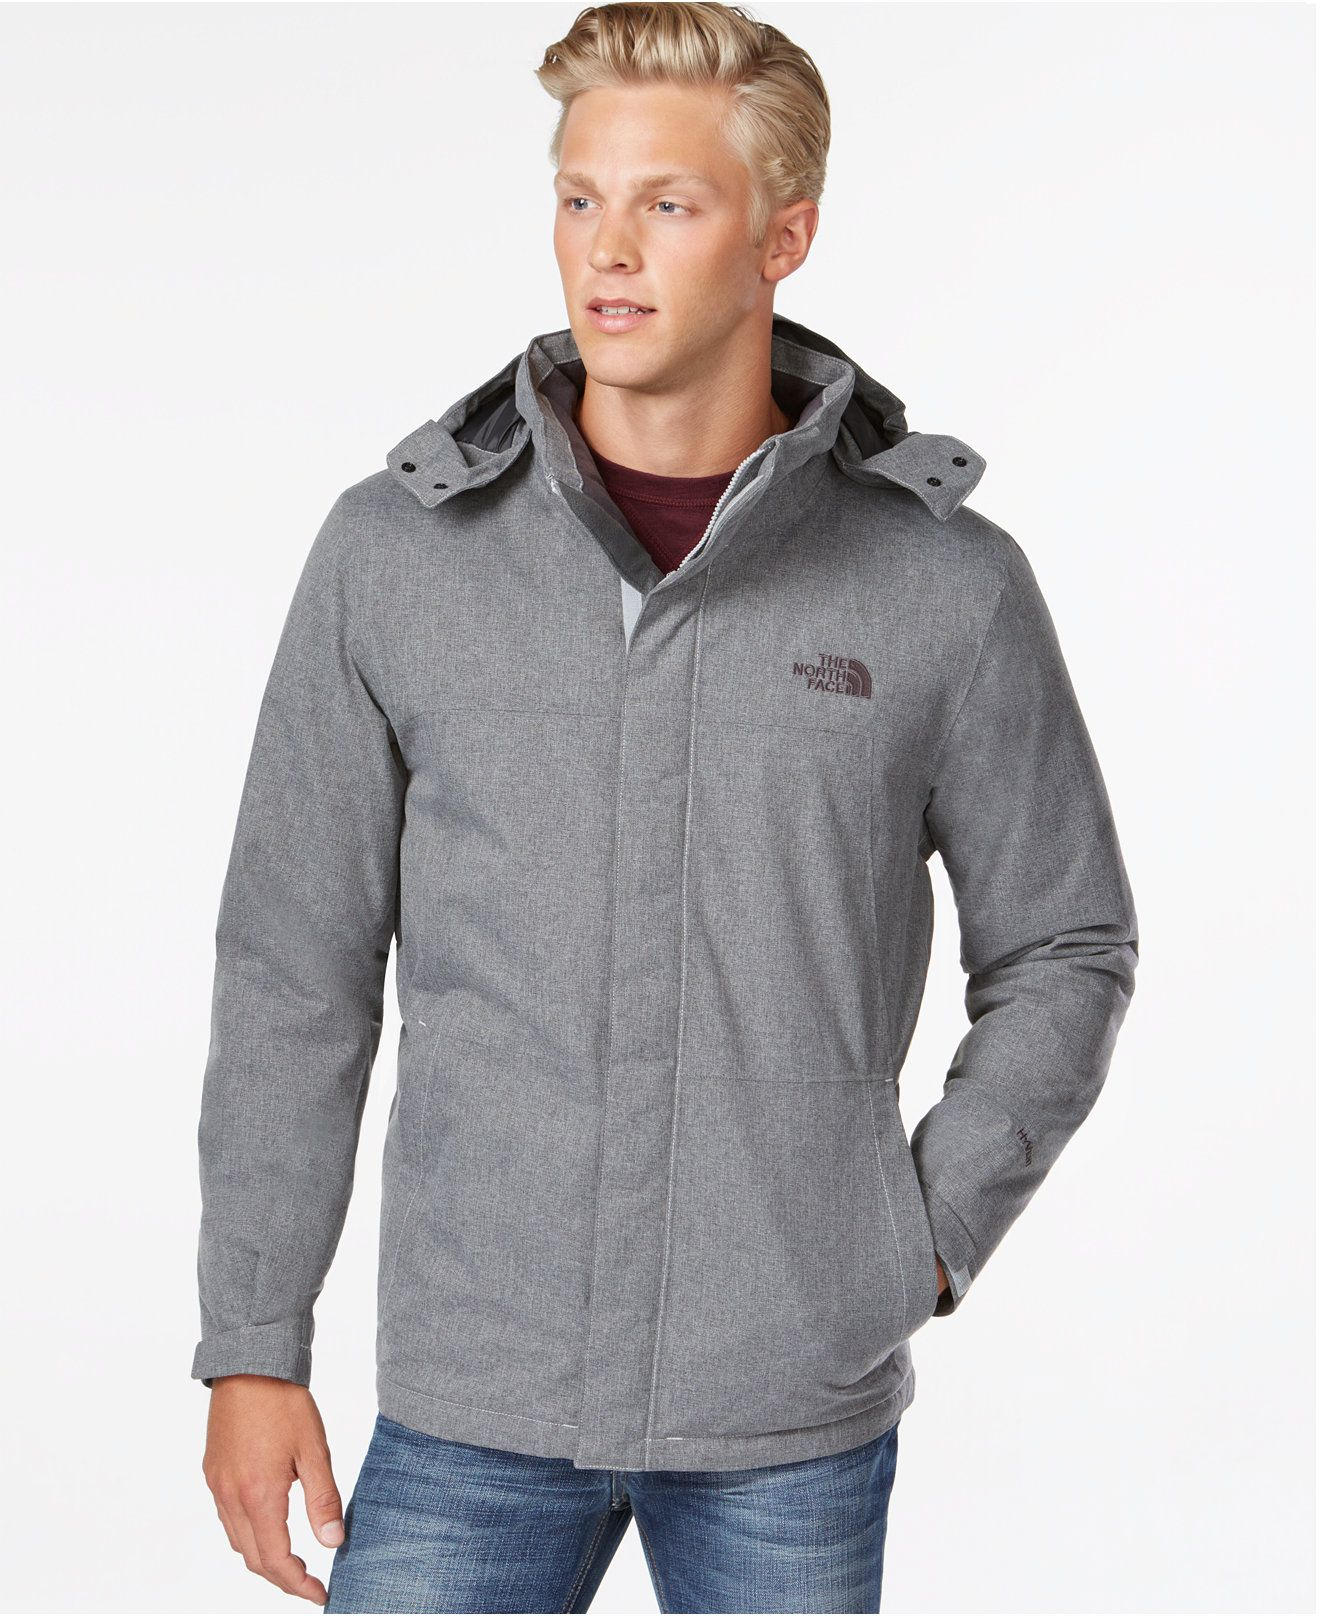 6e7556243 $200 The North Face Inlux Insulated Jacket - The North Face - Men ...